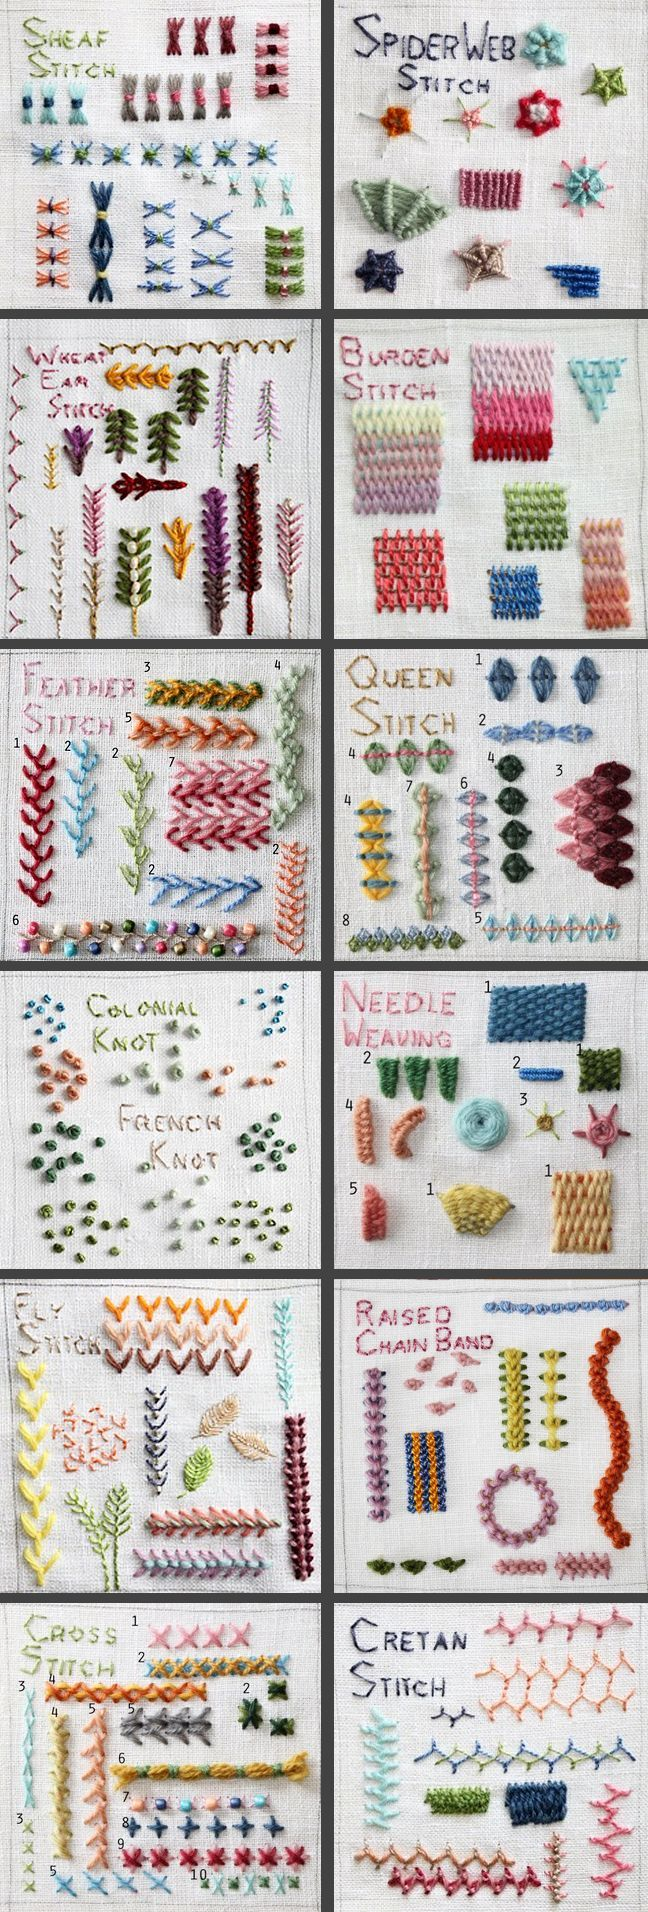 Different types hand embroidery stitches128